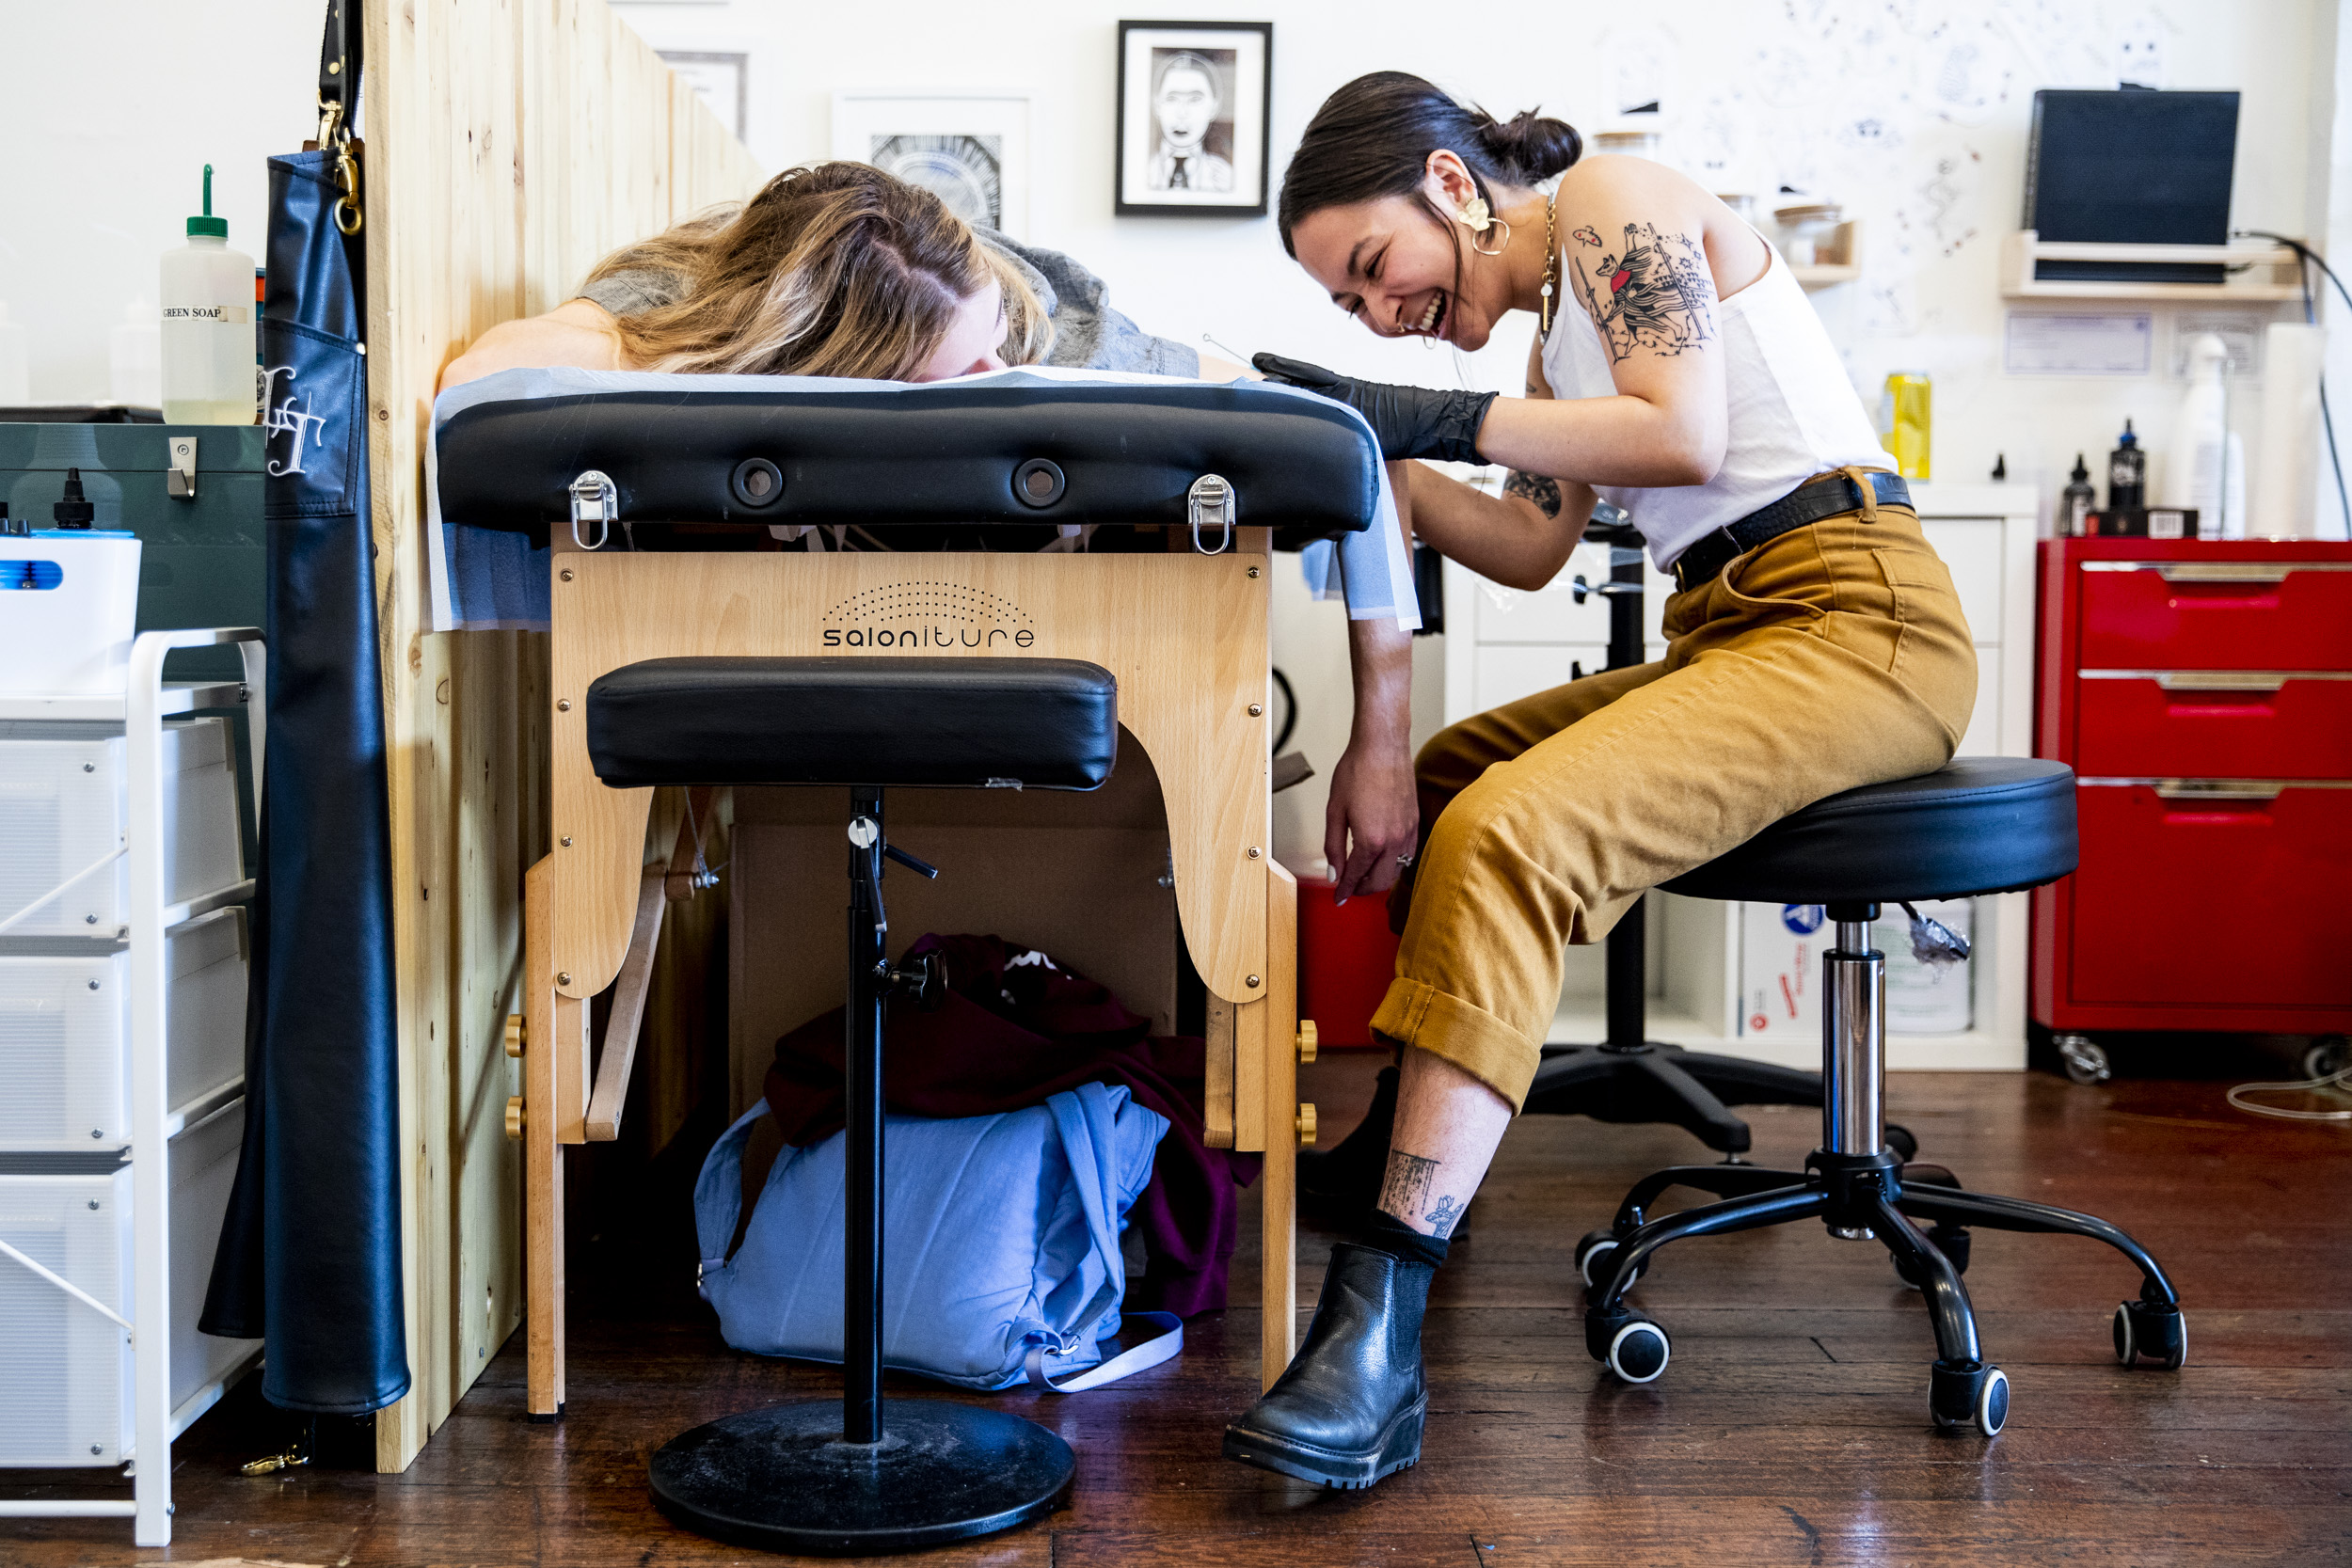 Tattoo artist Avery Osajima works on a client using the stick-and-poke method